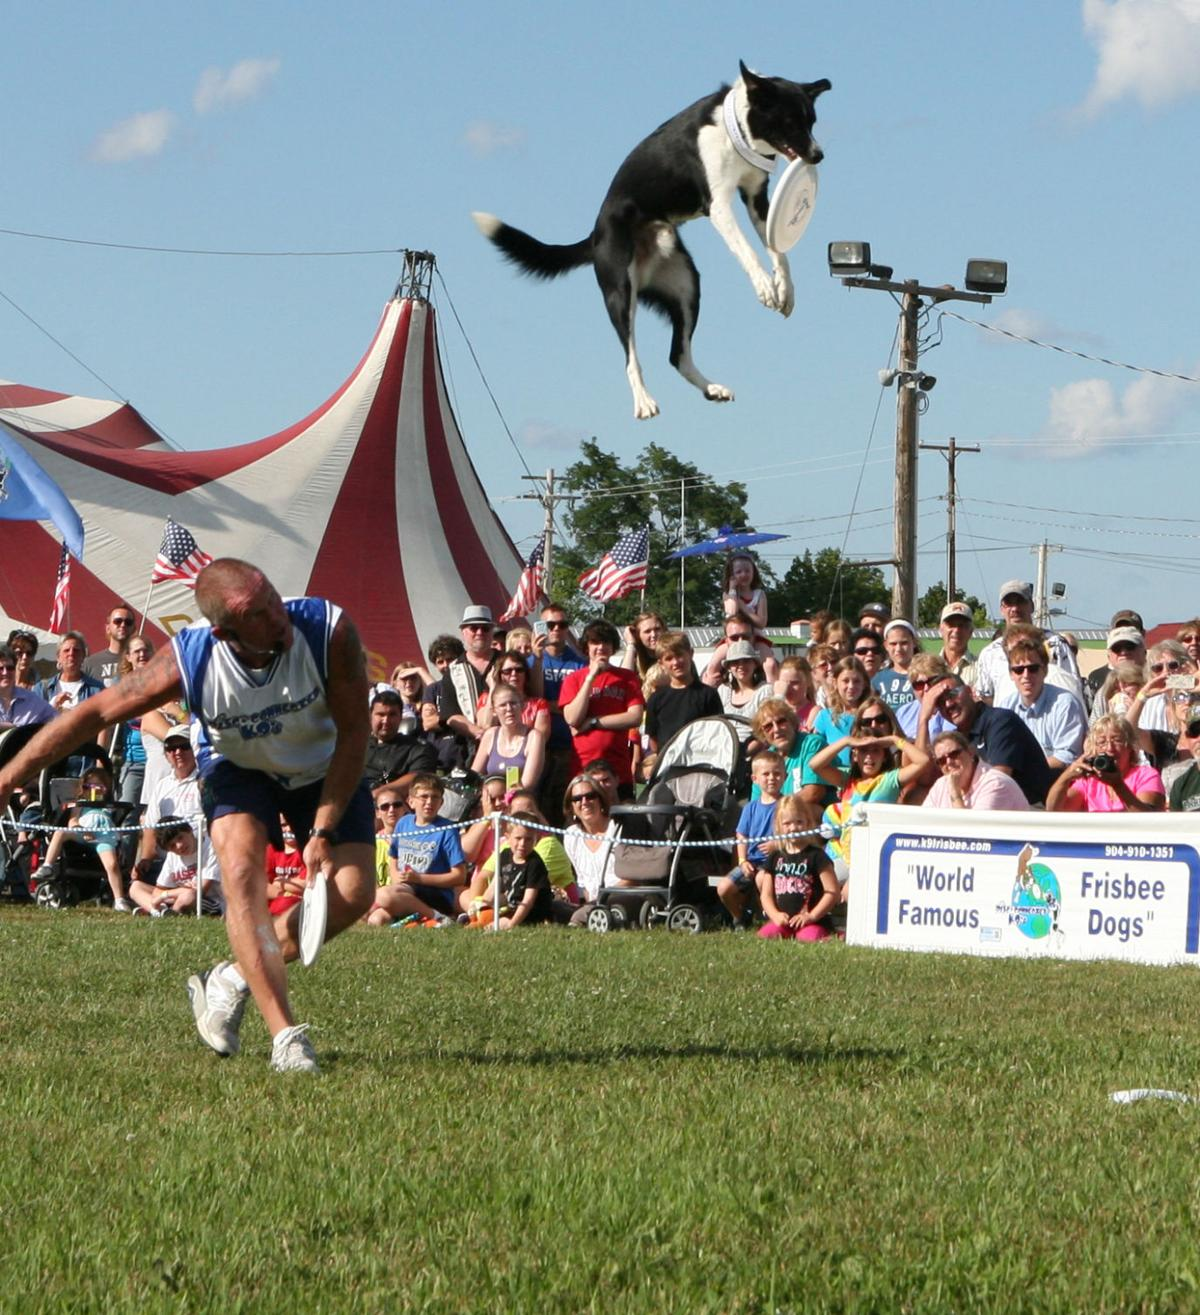 Frisbee dogs to perform at Shenandoah County Fair